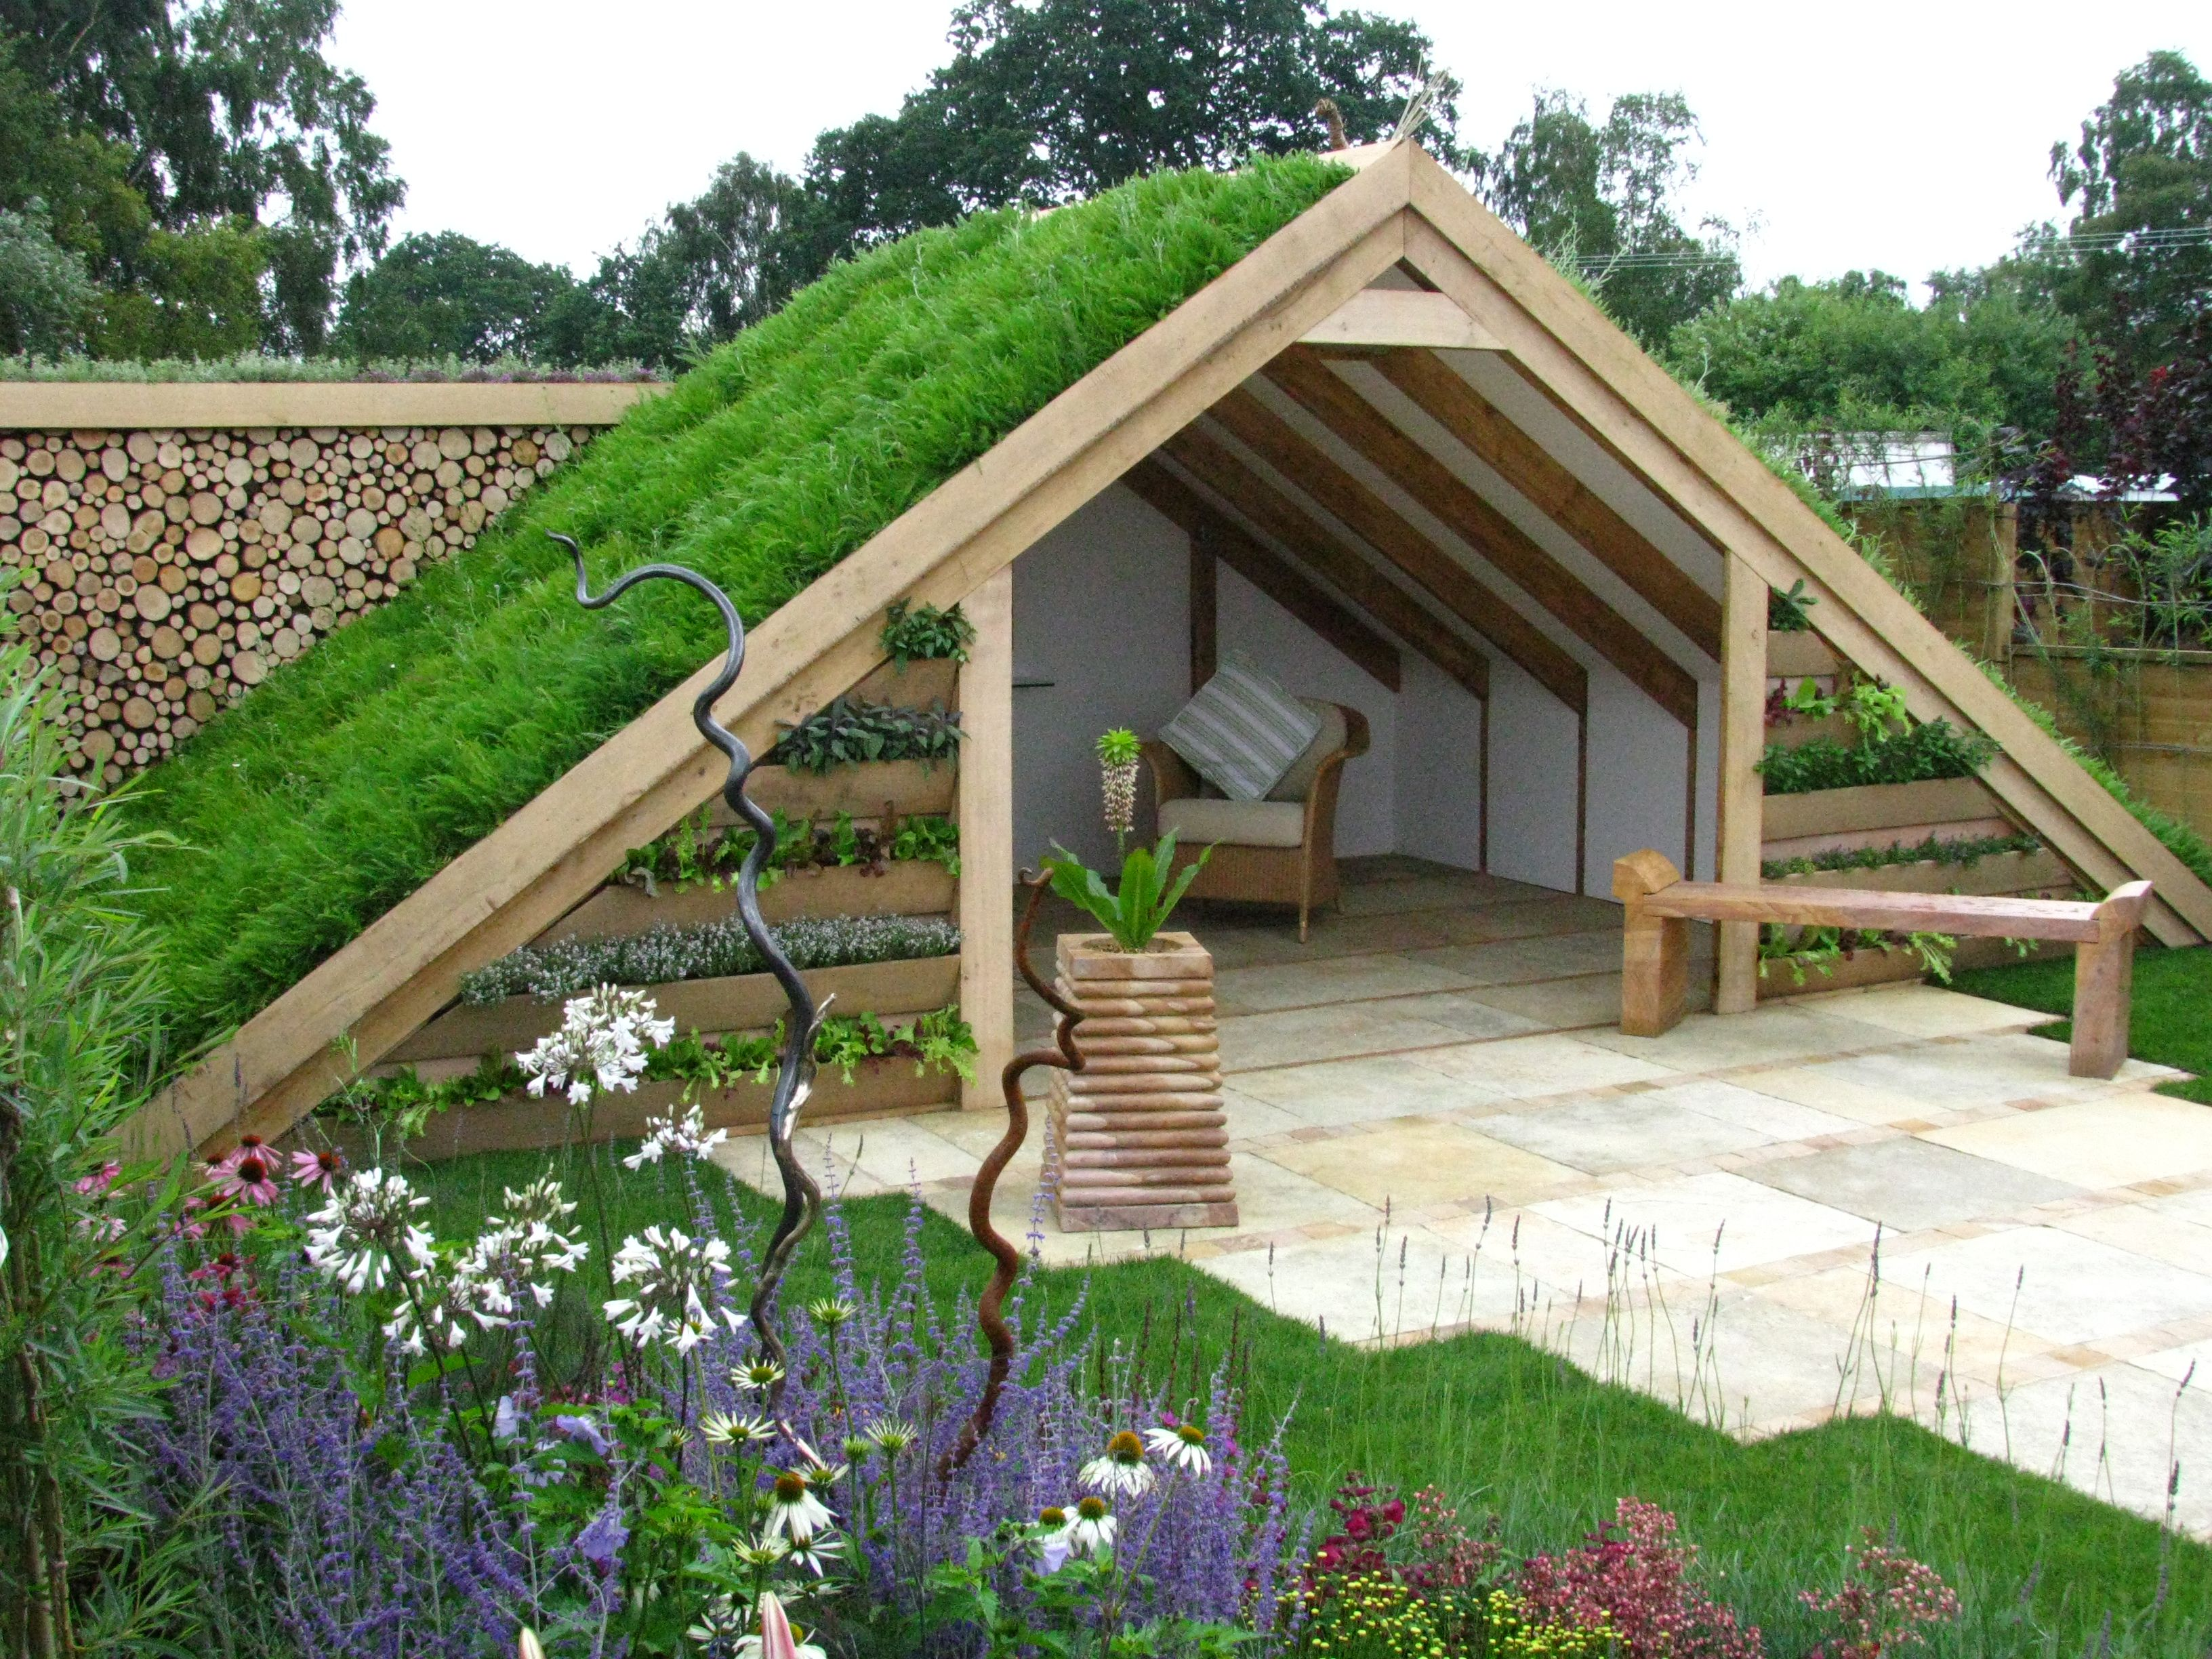 Garden Design Ideas garden design ideas by xtreme scapes Green Roof Shed At Chasewater Innovation Centre Brownhills Staffordshire Uk Photo Garden Shed By Thislefield Plants Design Mit Astrid Dietrich